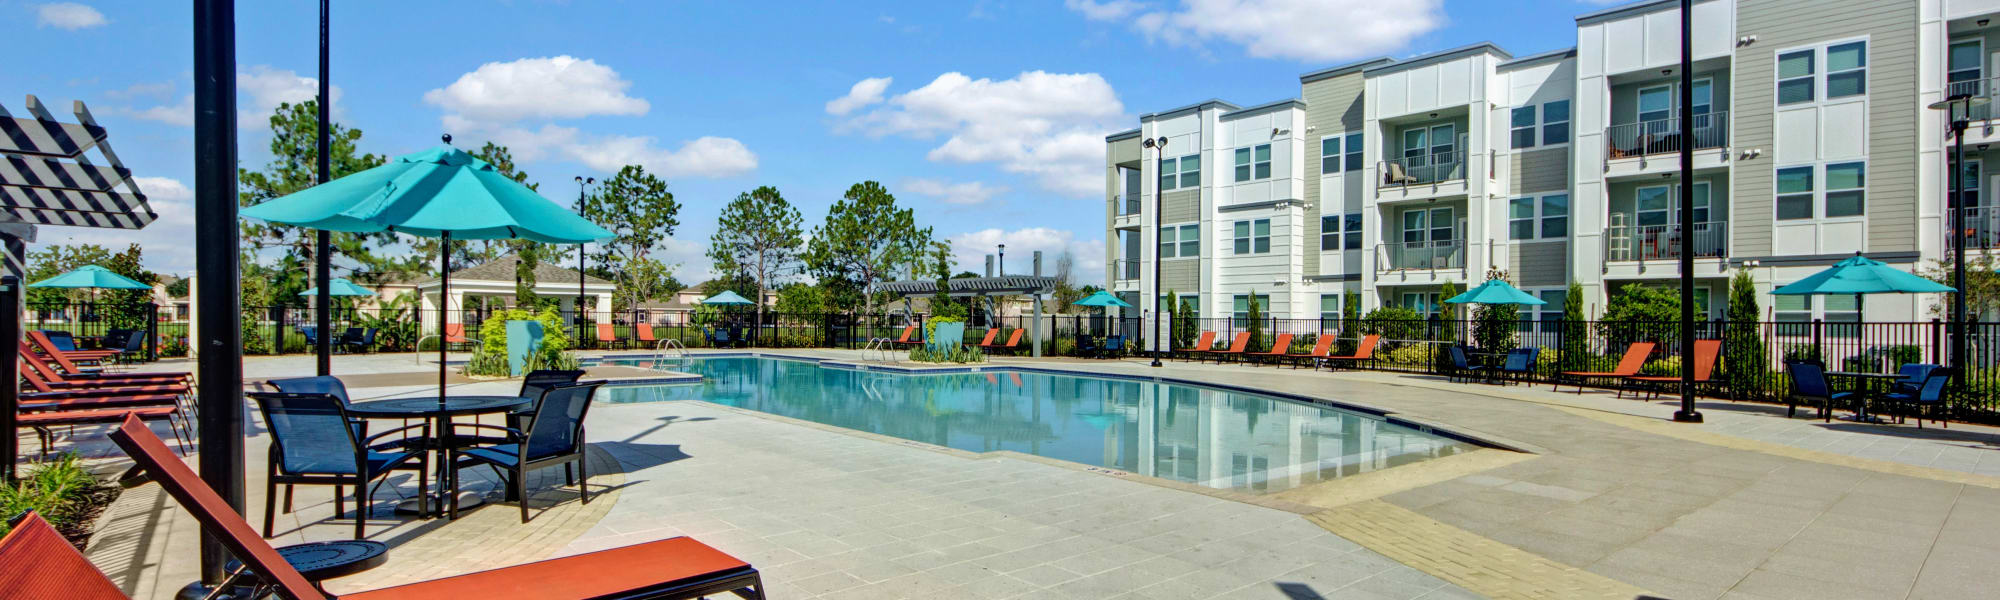 Amenities at Linden on the GreeneWay in Orlando, Florida